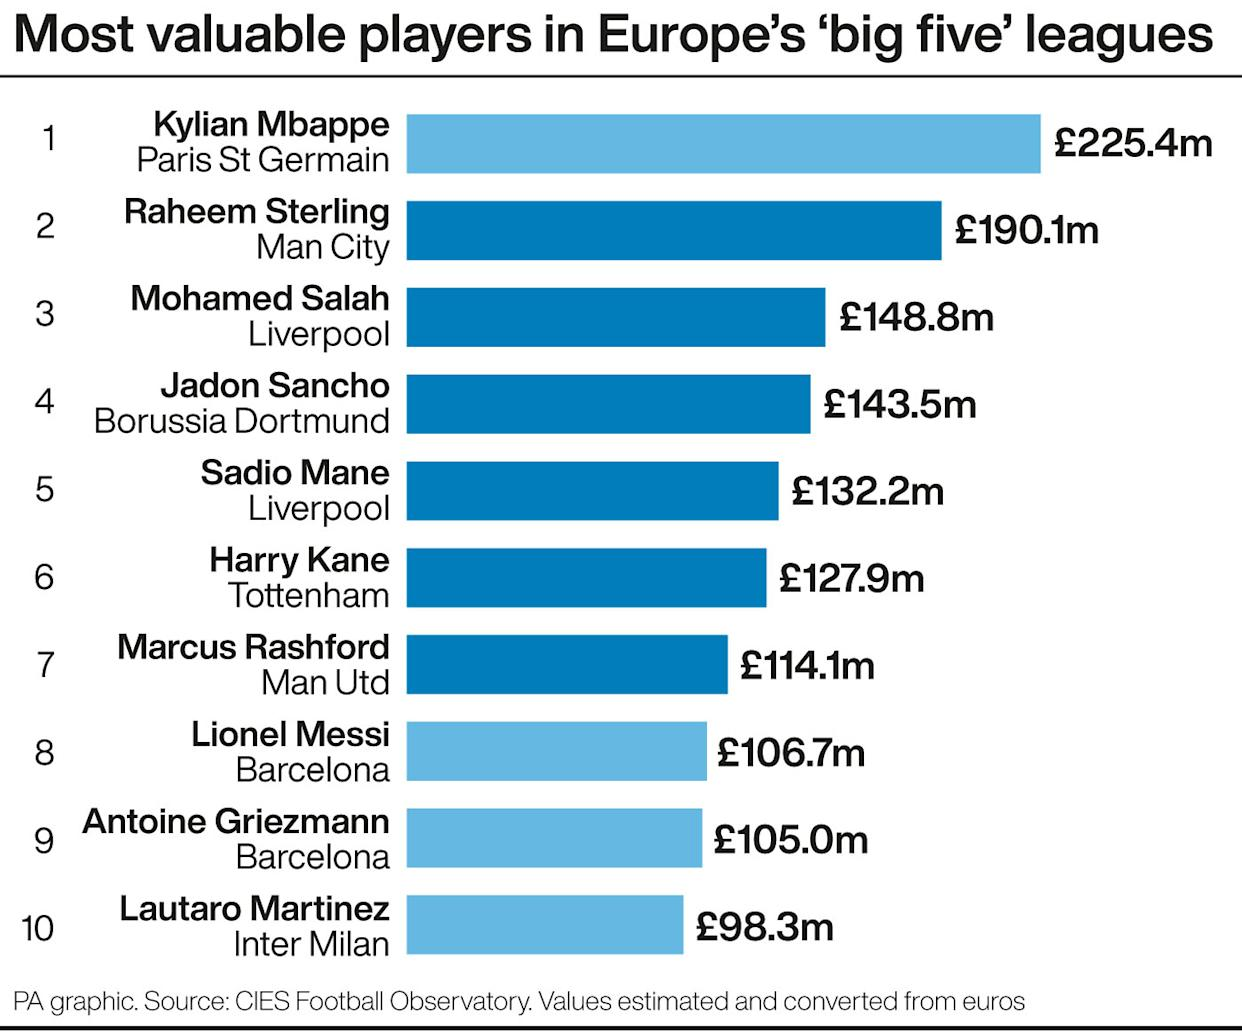 Most valuable players in Europe's 'big five' leagues (CIES)